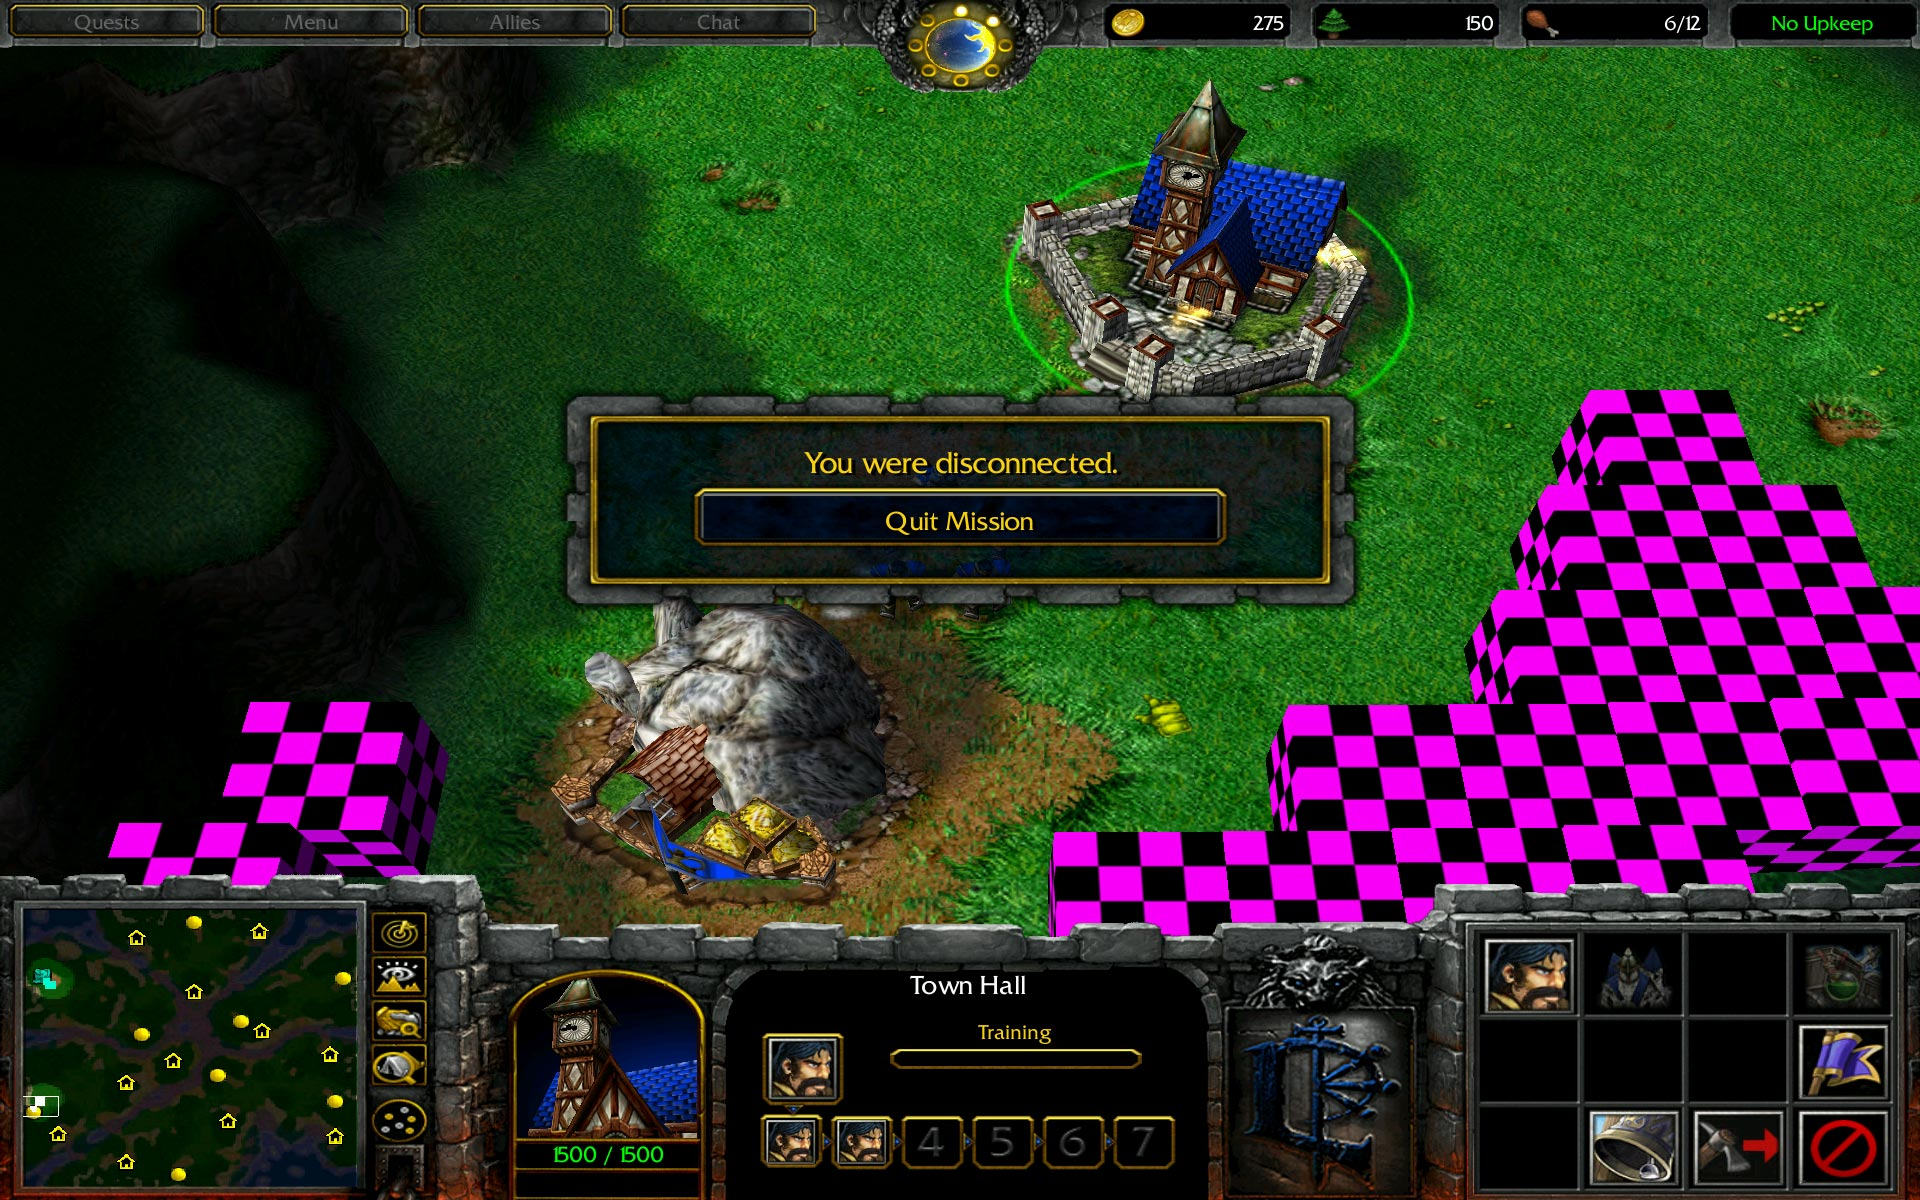 warcraft-3-dischack-by-cheater-in-ladder-game